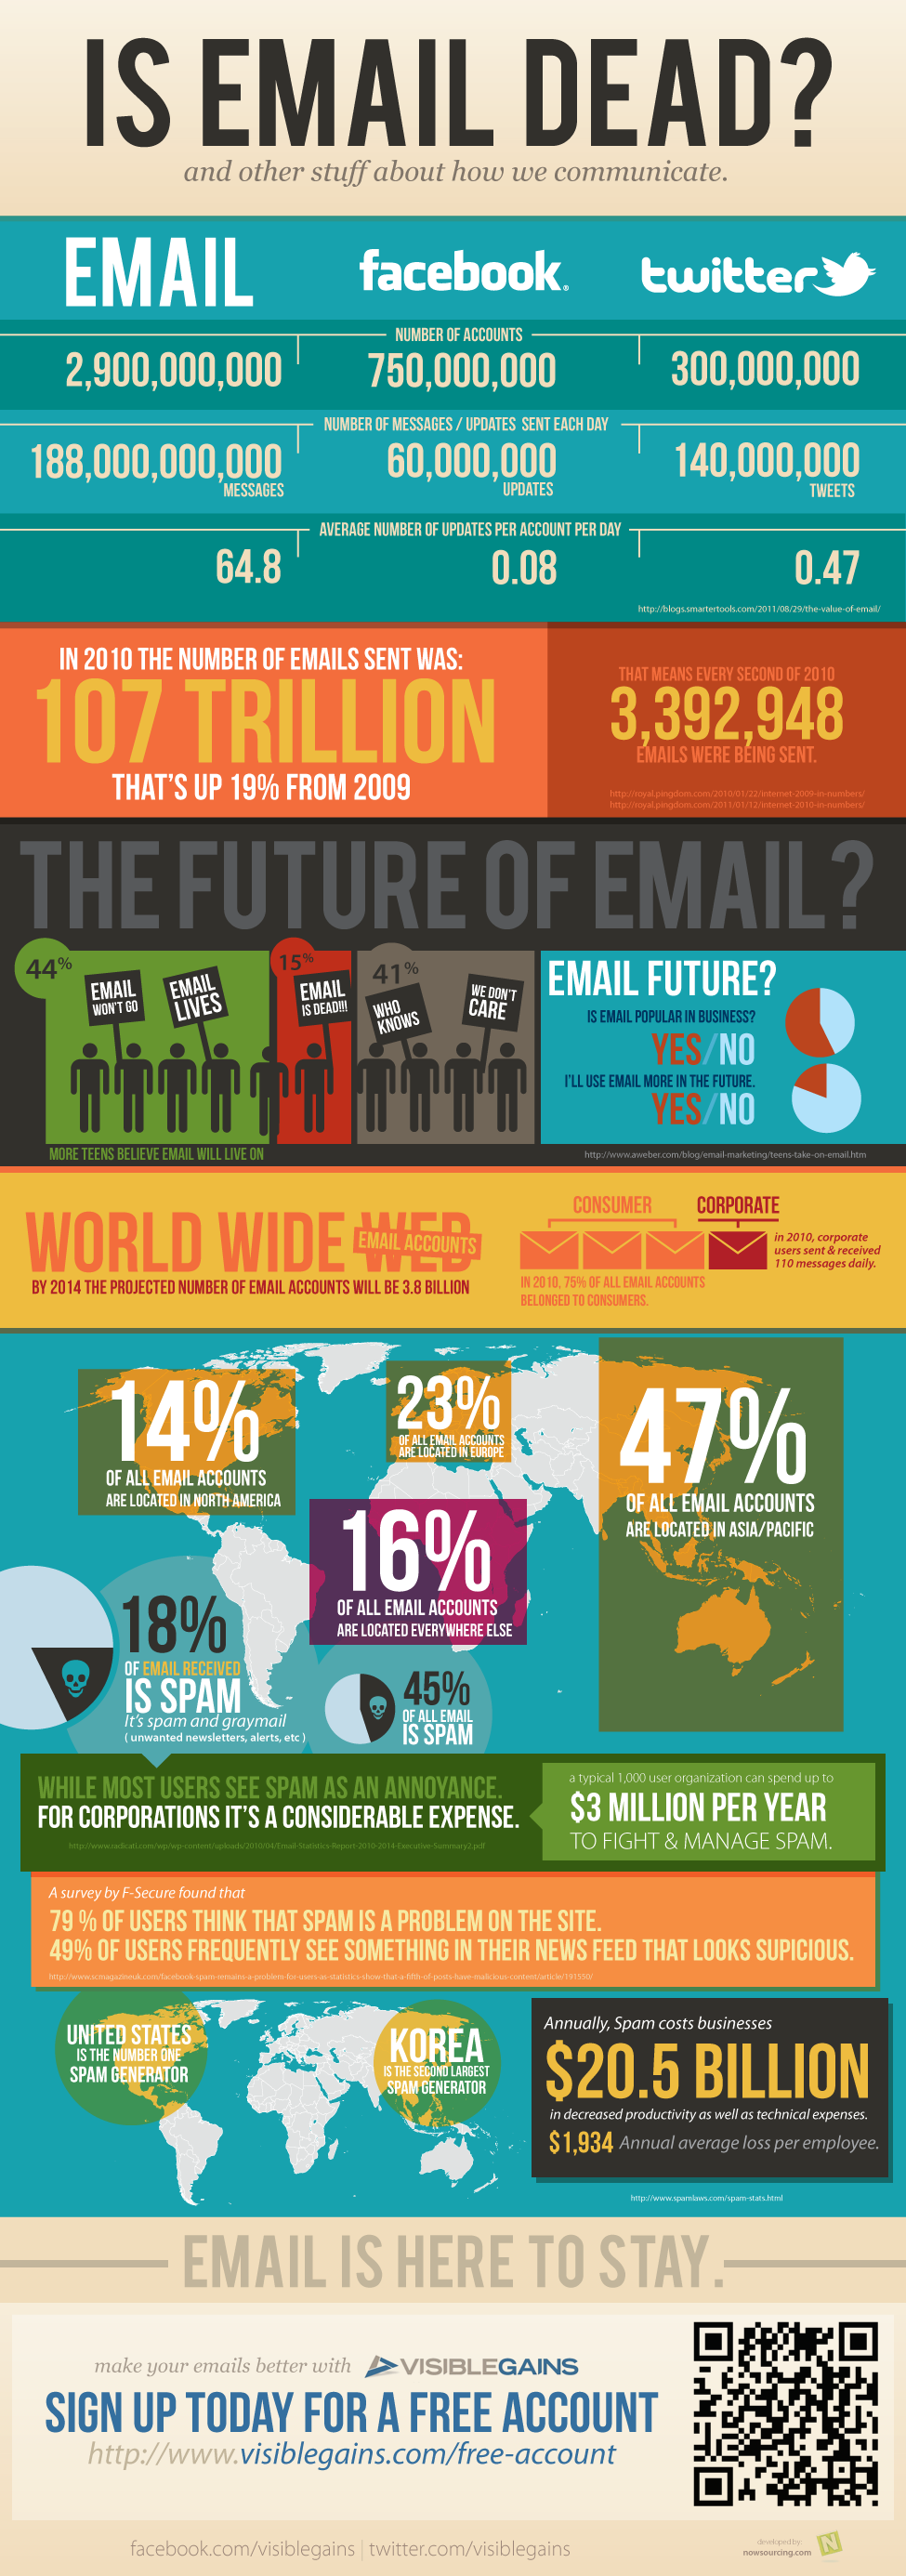 Email far outranks Facebook in daily interactions, making it the largest online social network on the planet.